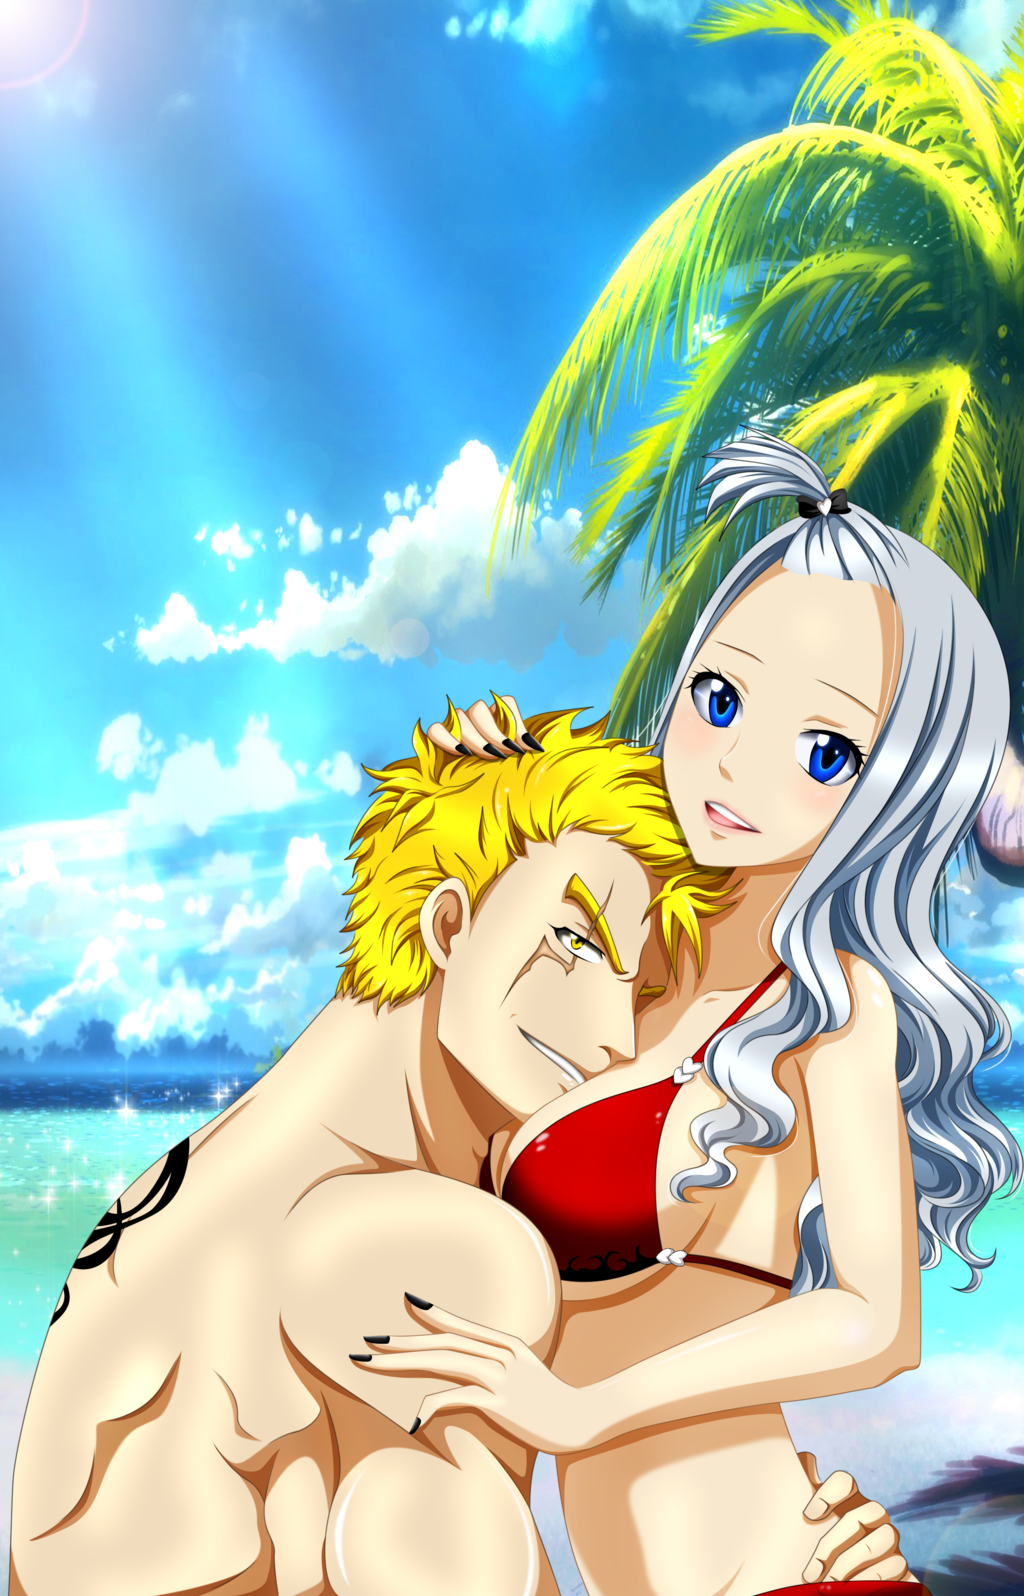 Laxus You Look So Proud Of Yourself Did You Finally Get The Girl You Want After Trying To Kill Her But Wha Fairy Tail Ships Fairy Tail Anime Fairy Tail Laxus It took a while, but elfman managed to forgive himself. fairy tail ships fairy tail anime